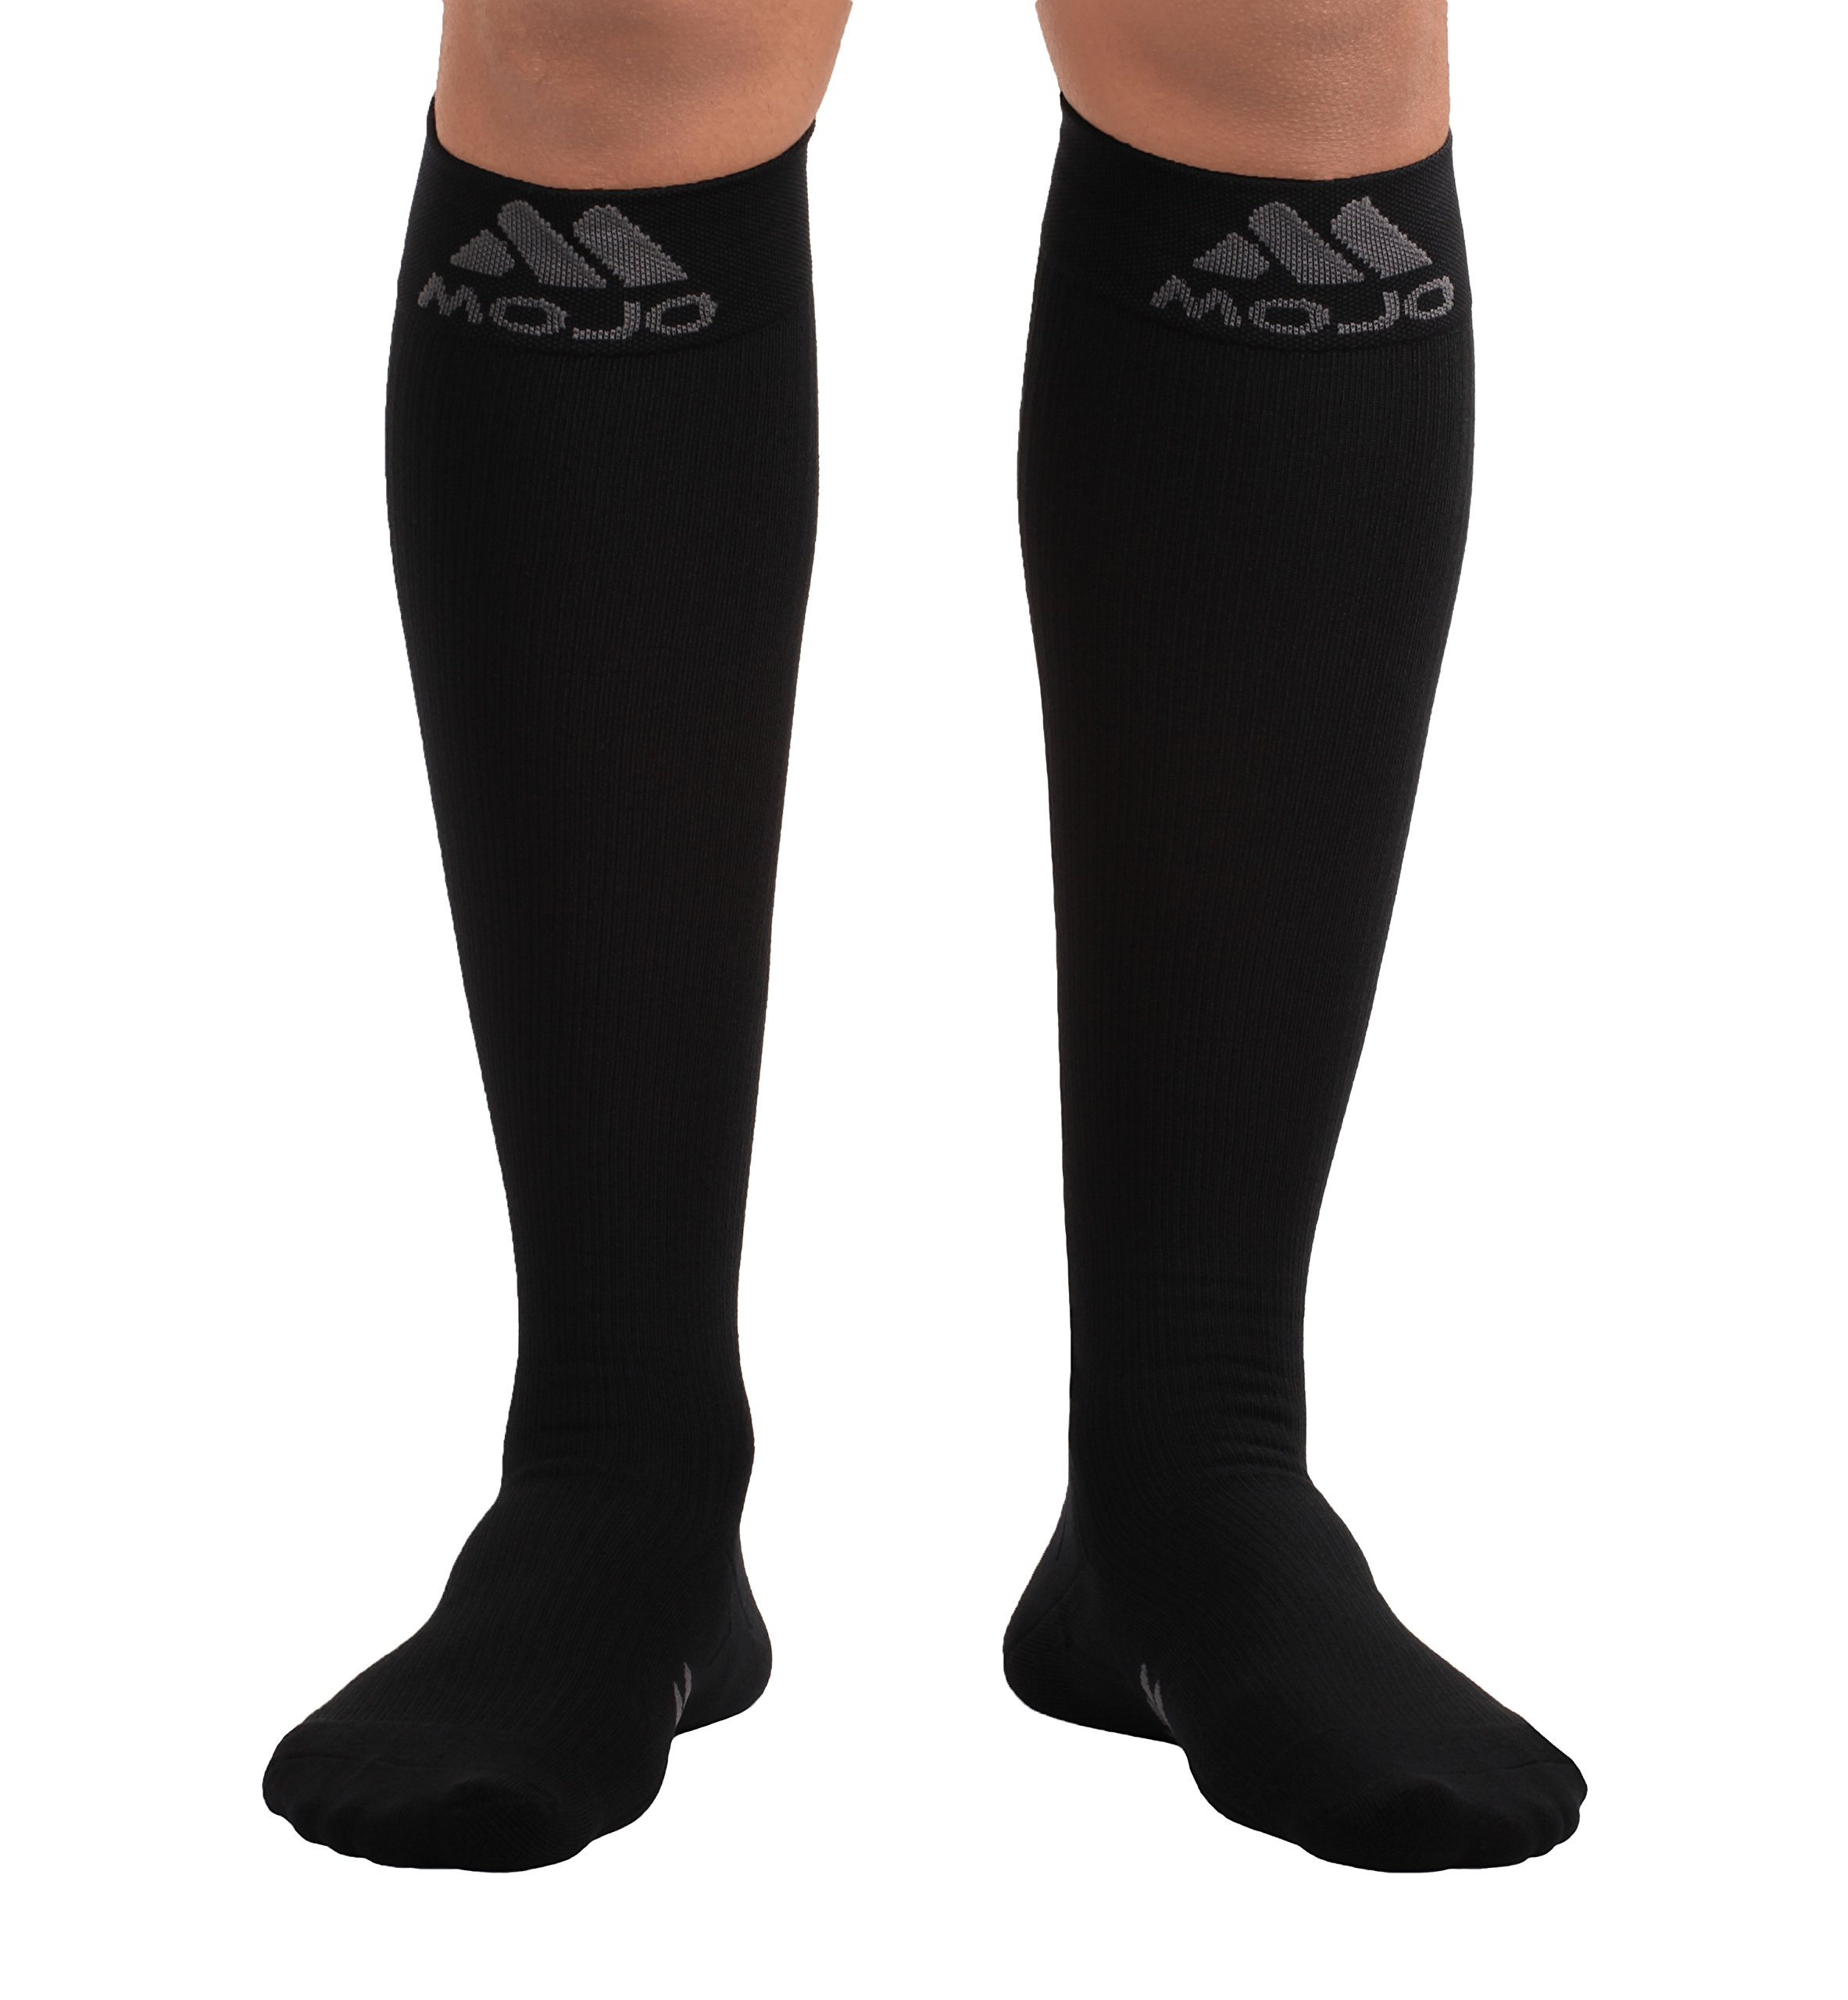 4d6eca90e14 Mojo Compression Socks - Comfortable Coolmax Material for Recovery    Performance. Medical Support Socks -